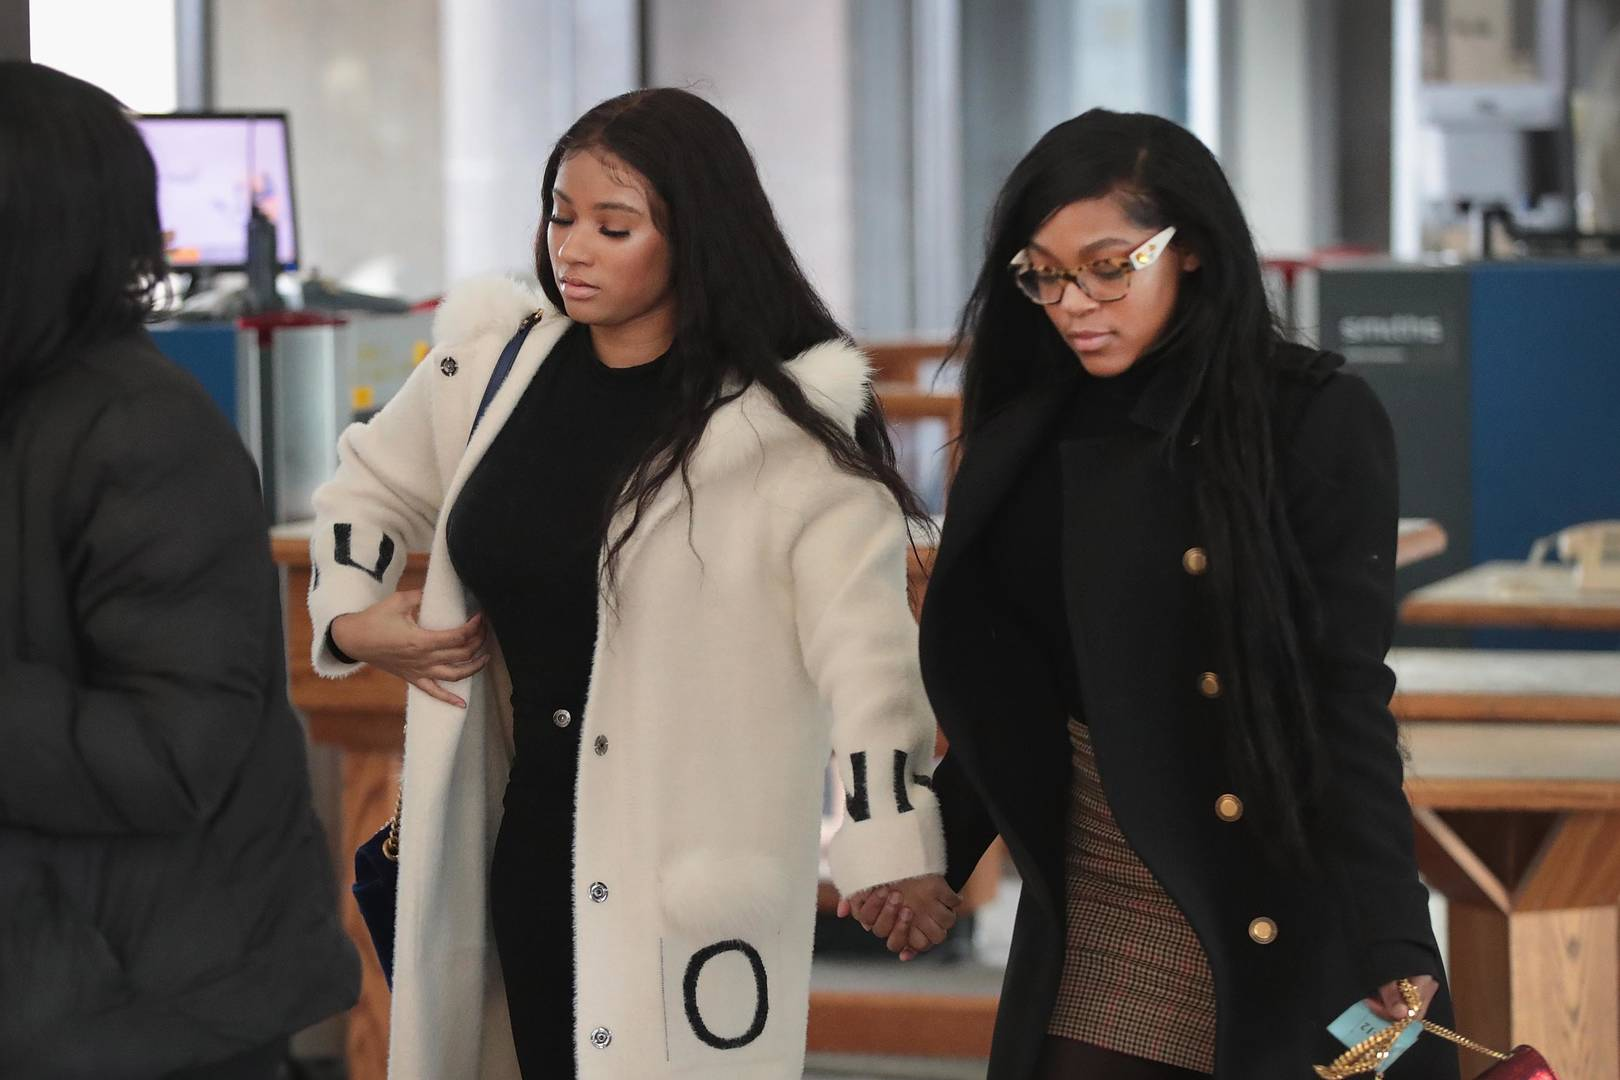 R Kelly's Girlfriends Clarify Their Living Situation After Reports They Were Evicted